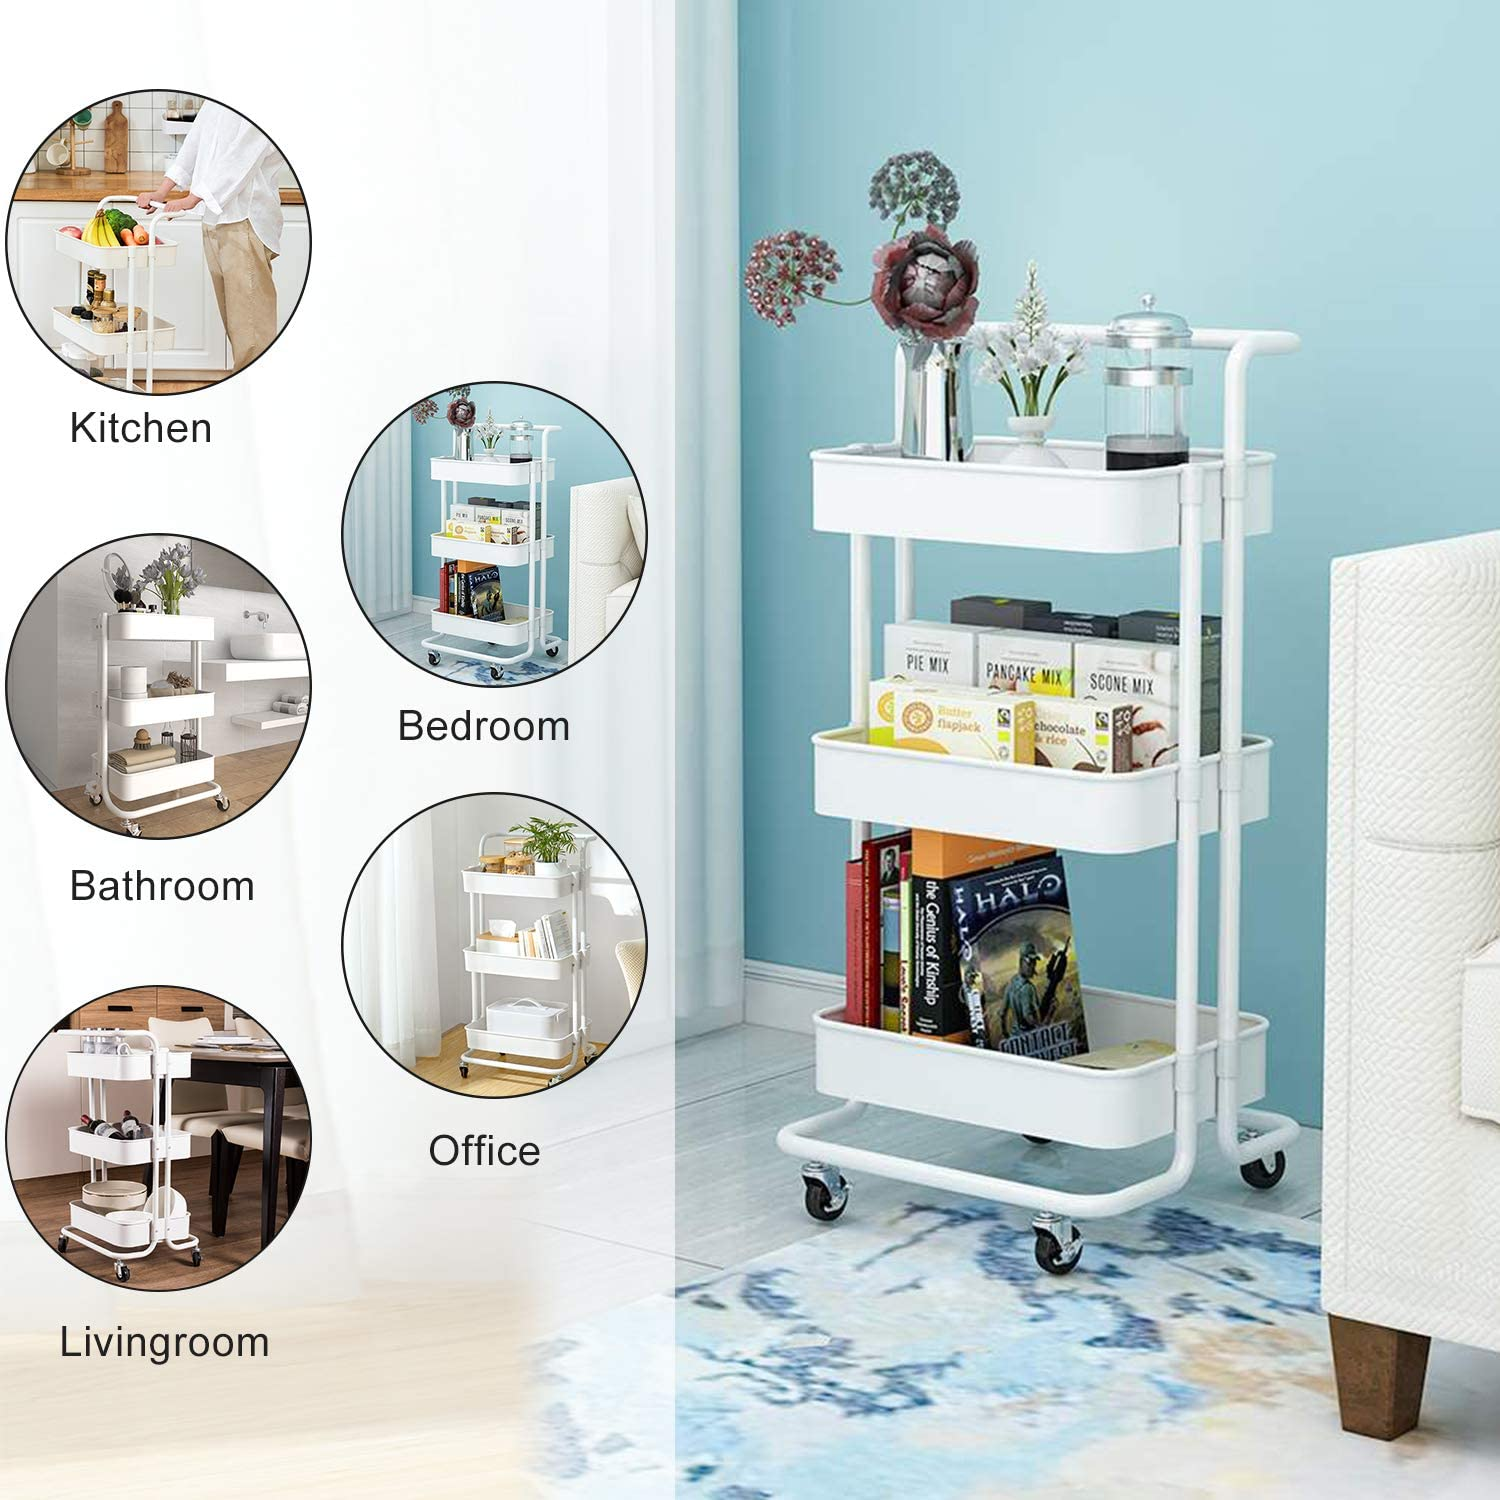 Office Bathroom PECHAM 3-Tier Rolling Utility Cart with Handle Movable Storage Organizer Shelves Multifunction Storage Trolley Service Cart with Lockable Wheels,Easy Assembly for Kitchen